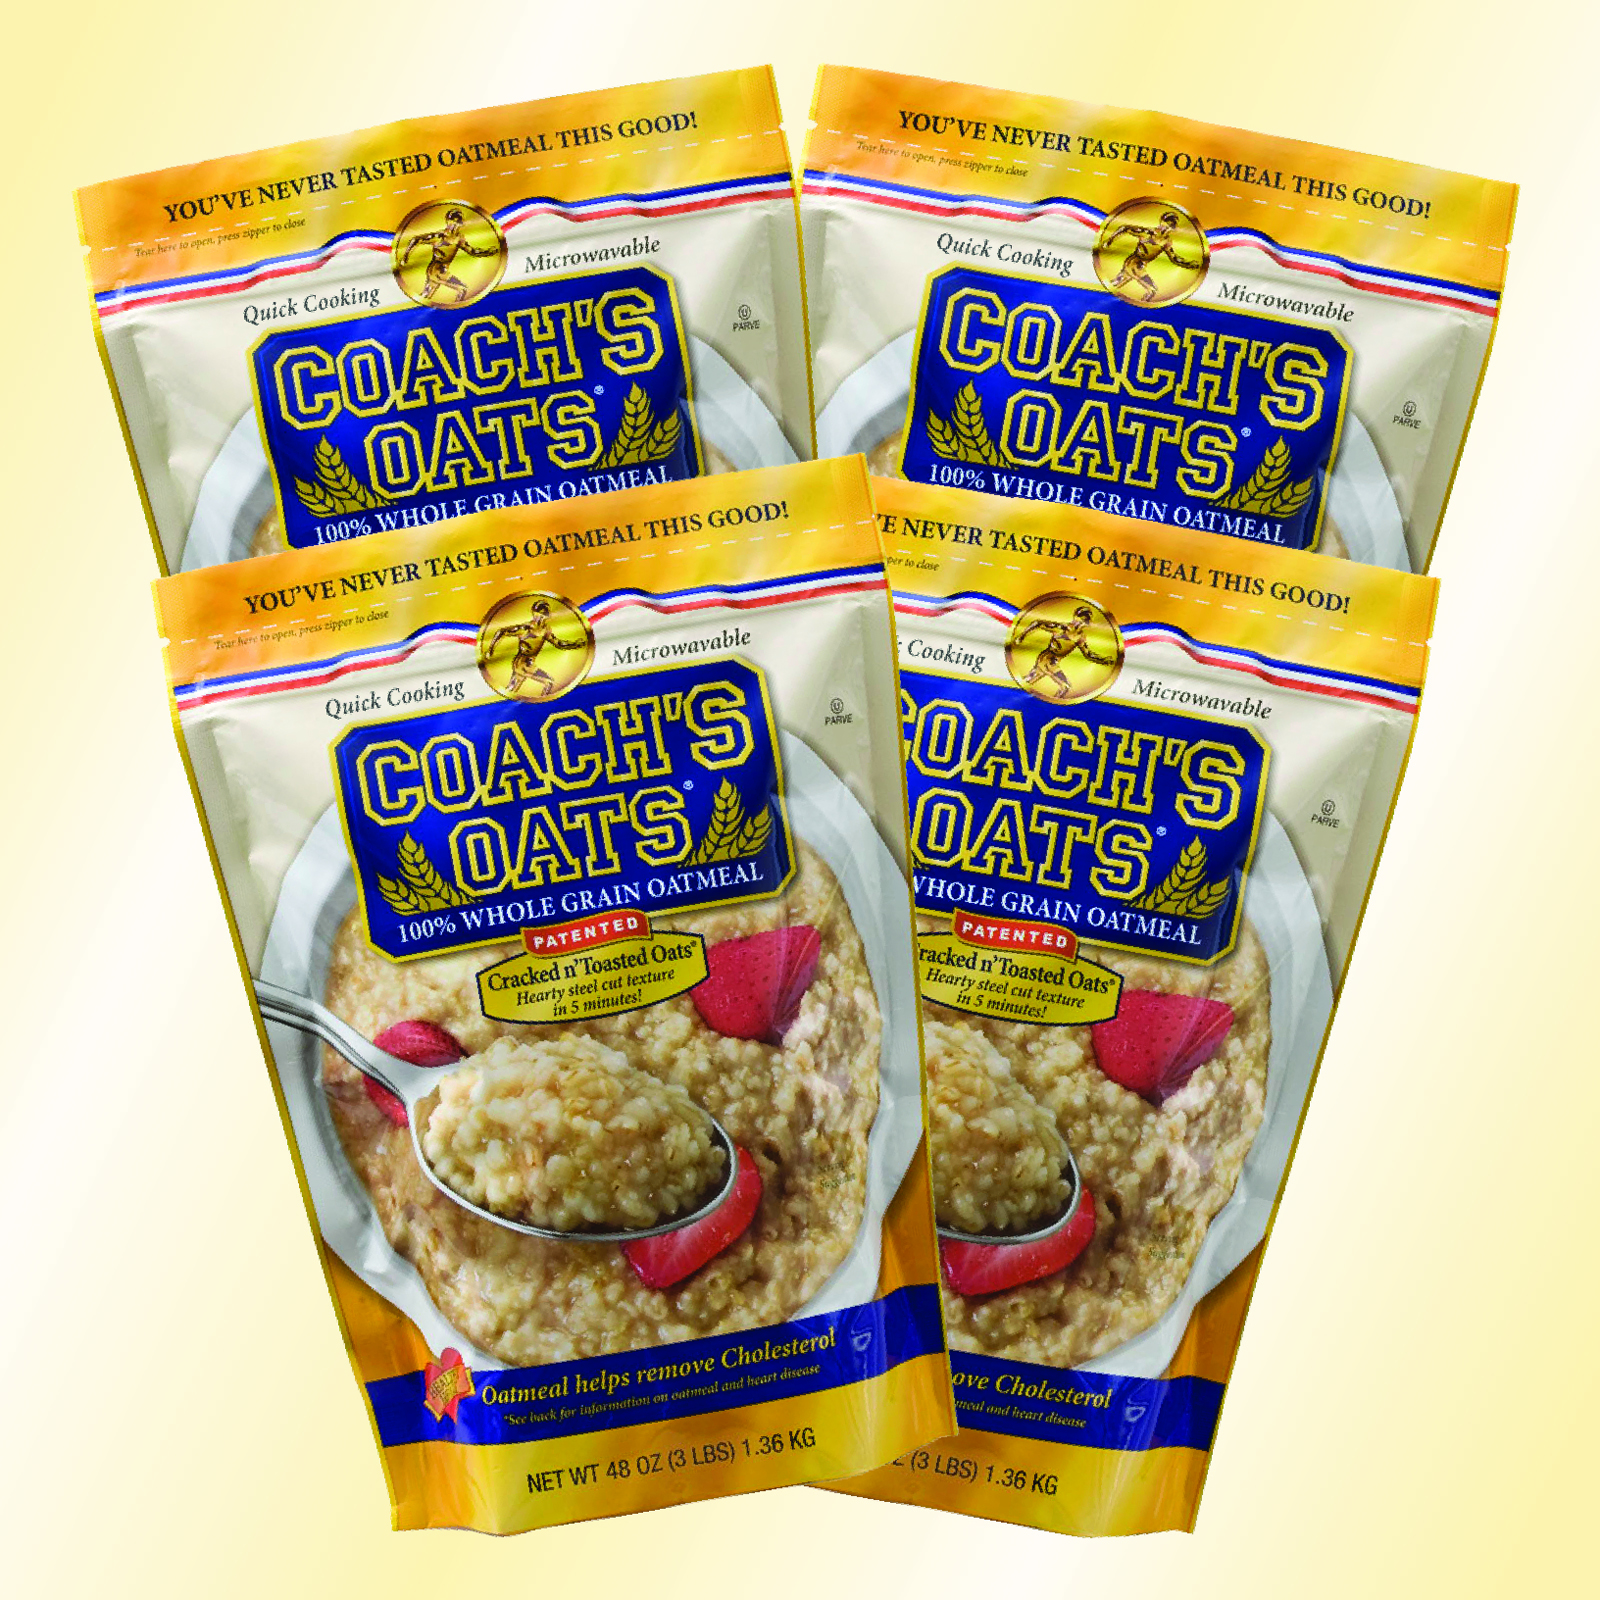 4 Bags of Coach's Oats